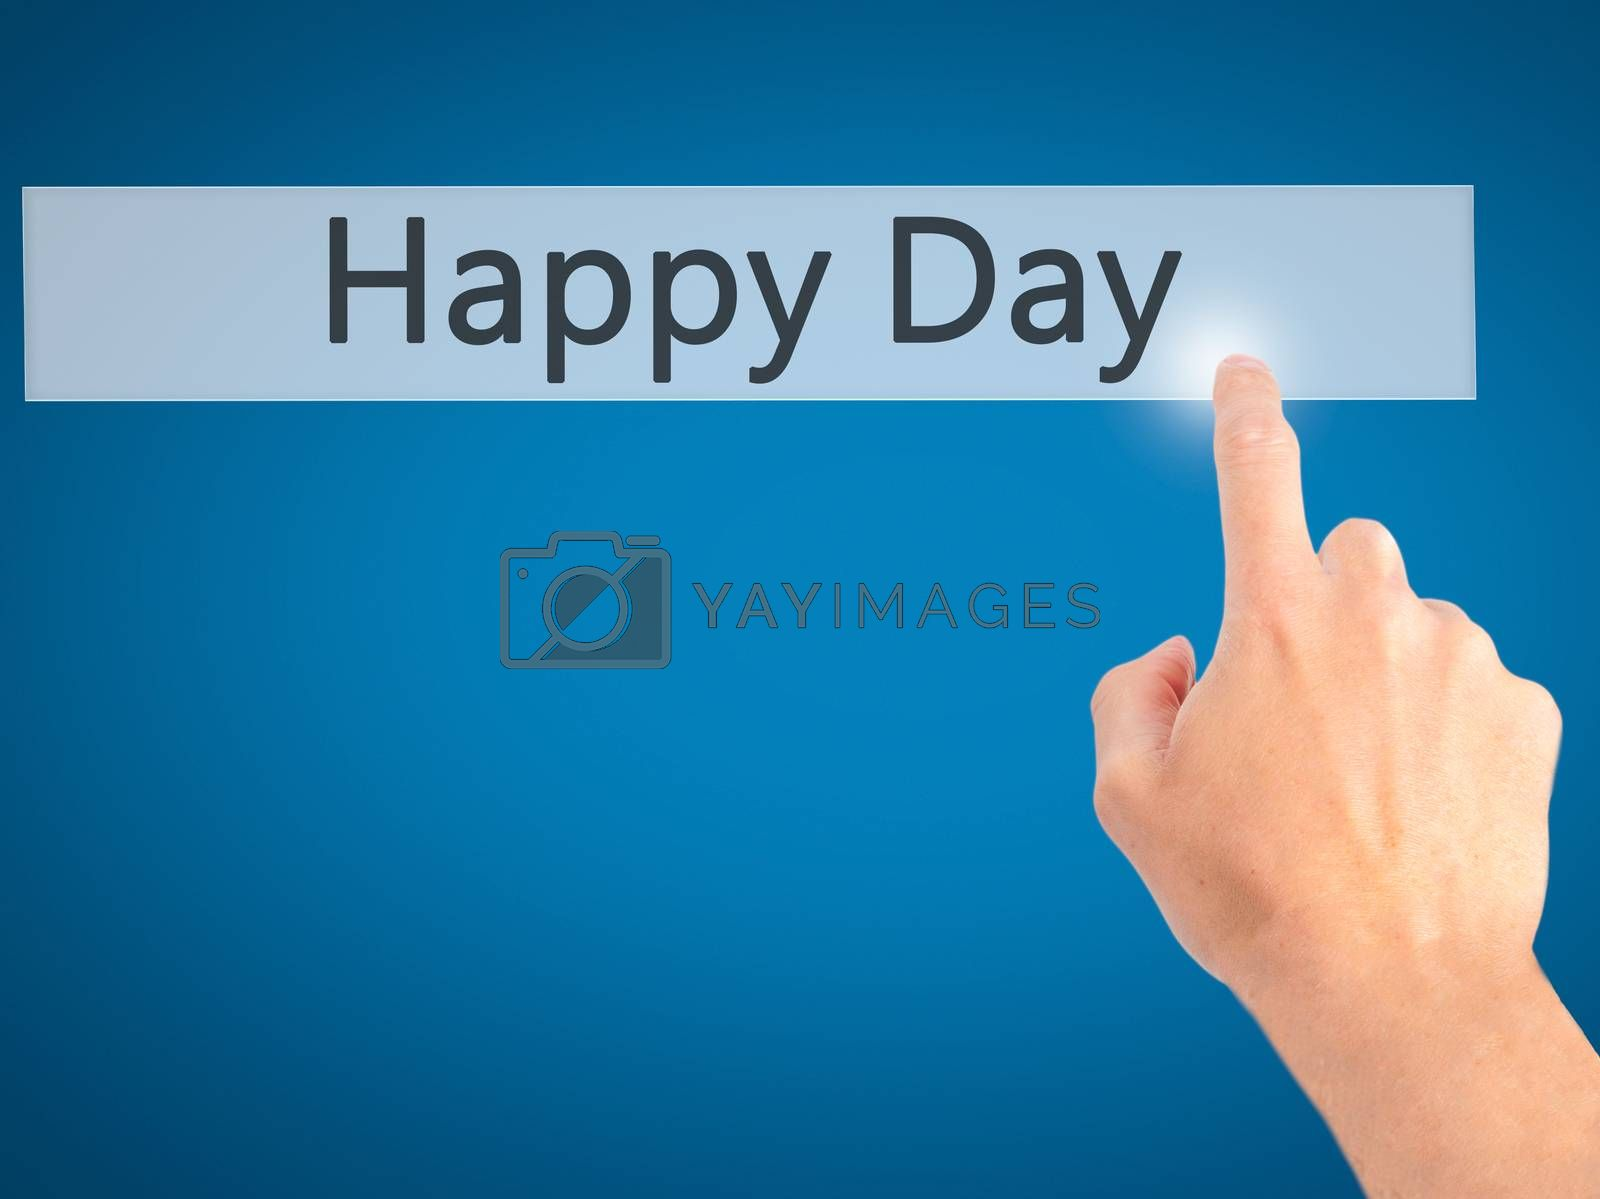 Happy Day - Hand pressing a button on blurred background concept by netsay.net